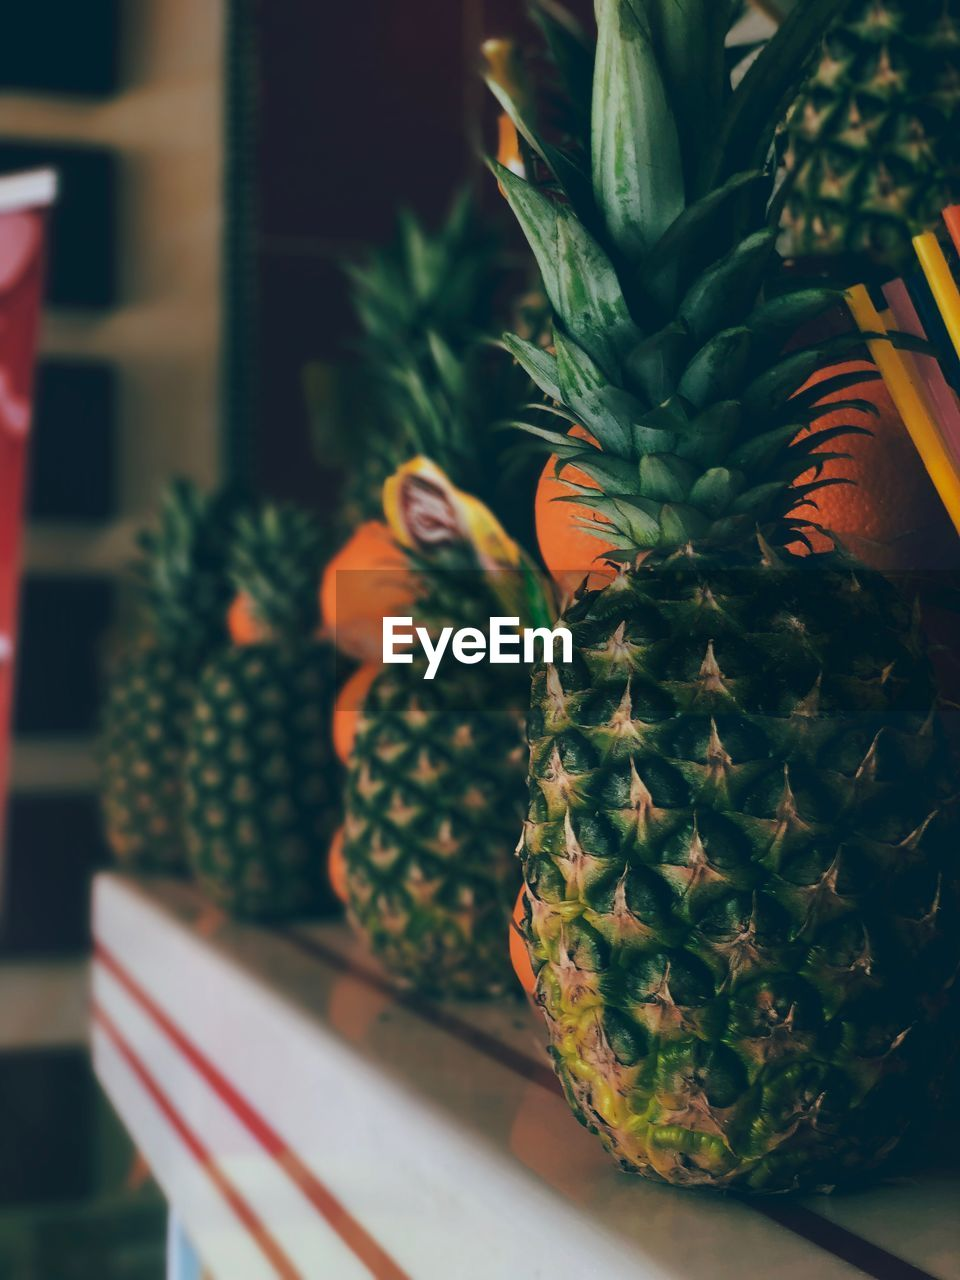 pineapple, green color, no people, potted plant, tropical fruit, succulent plant, indoors, close-up, fruit, cactus, healthy eating, plant, growth, wellbeing, food and drink, freshness, food, nature, still life, focus on foreground, houseplant